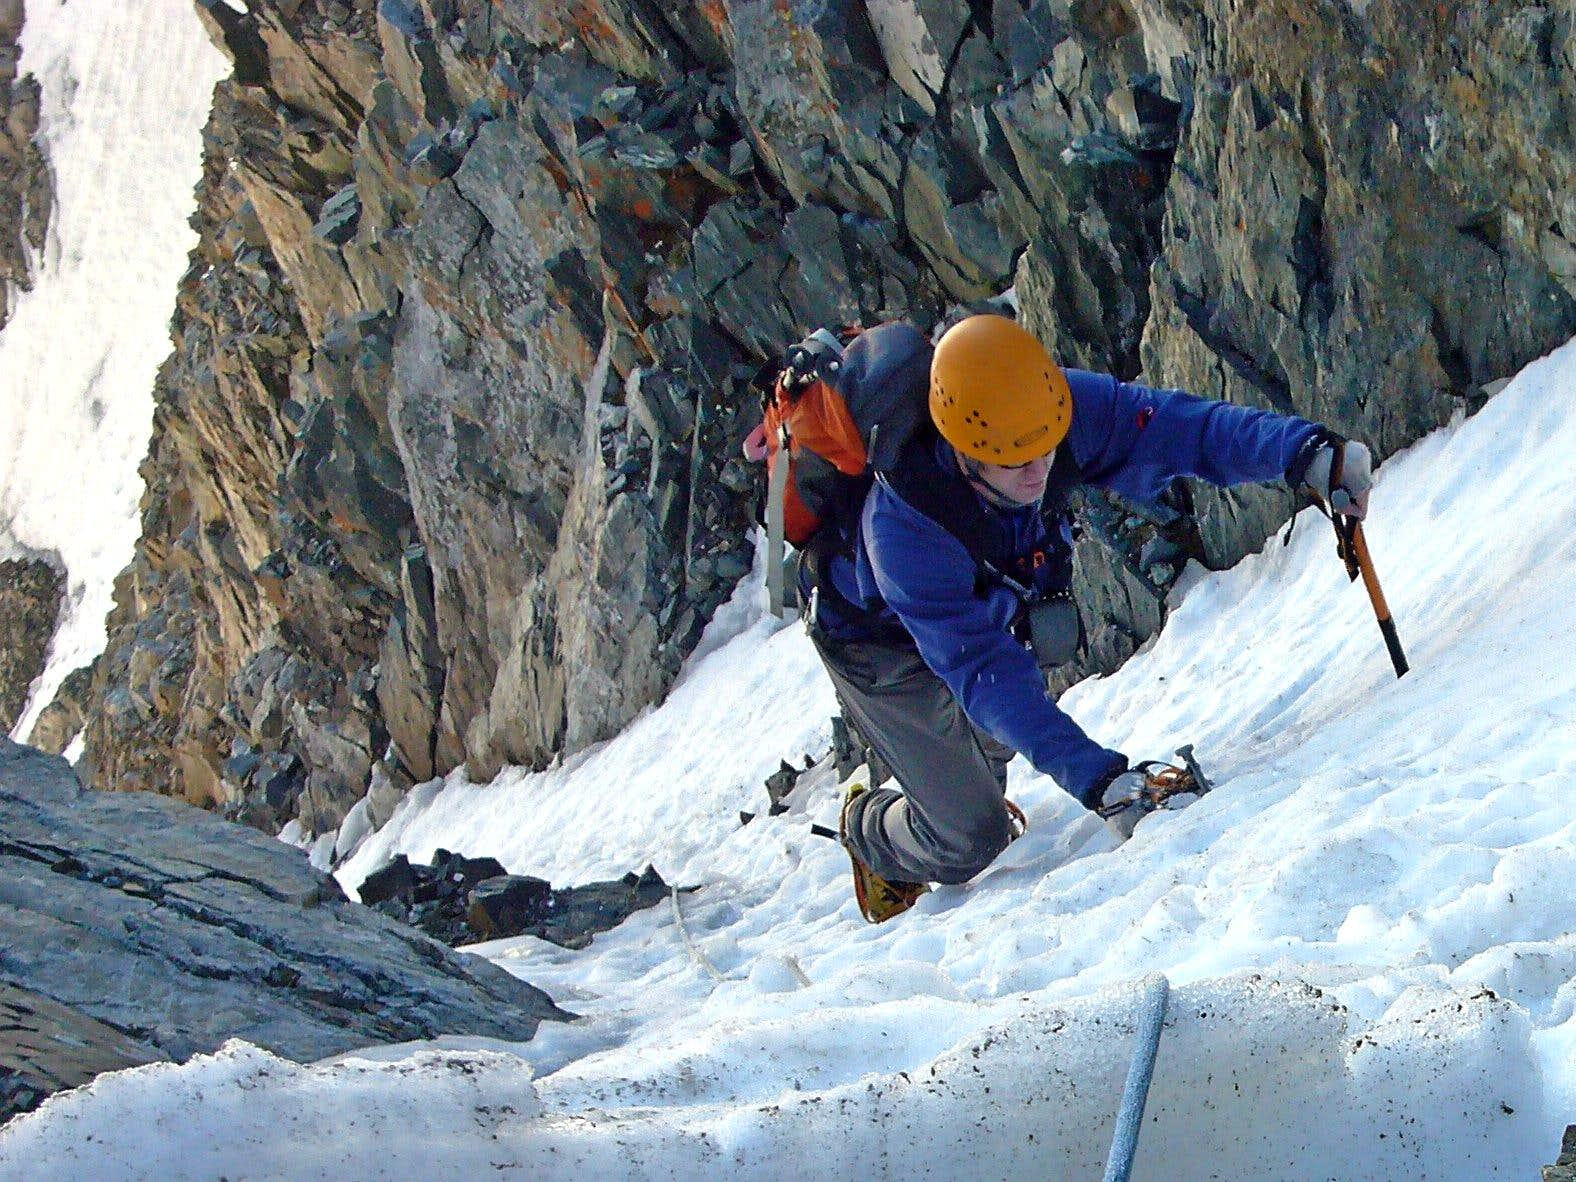 Pacific Peak - North Couloir